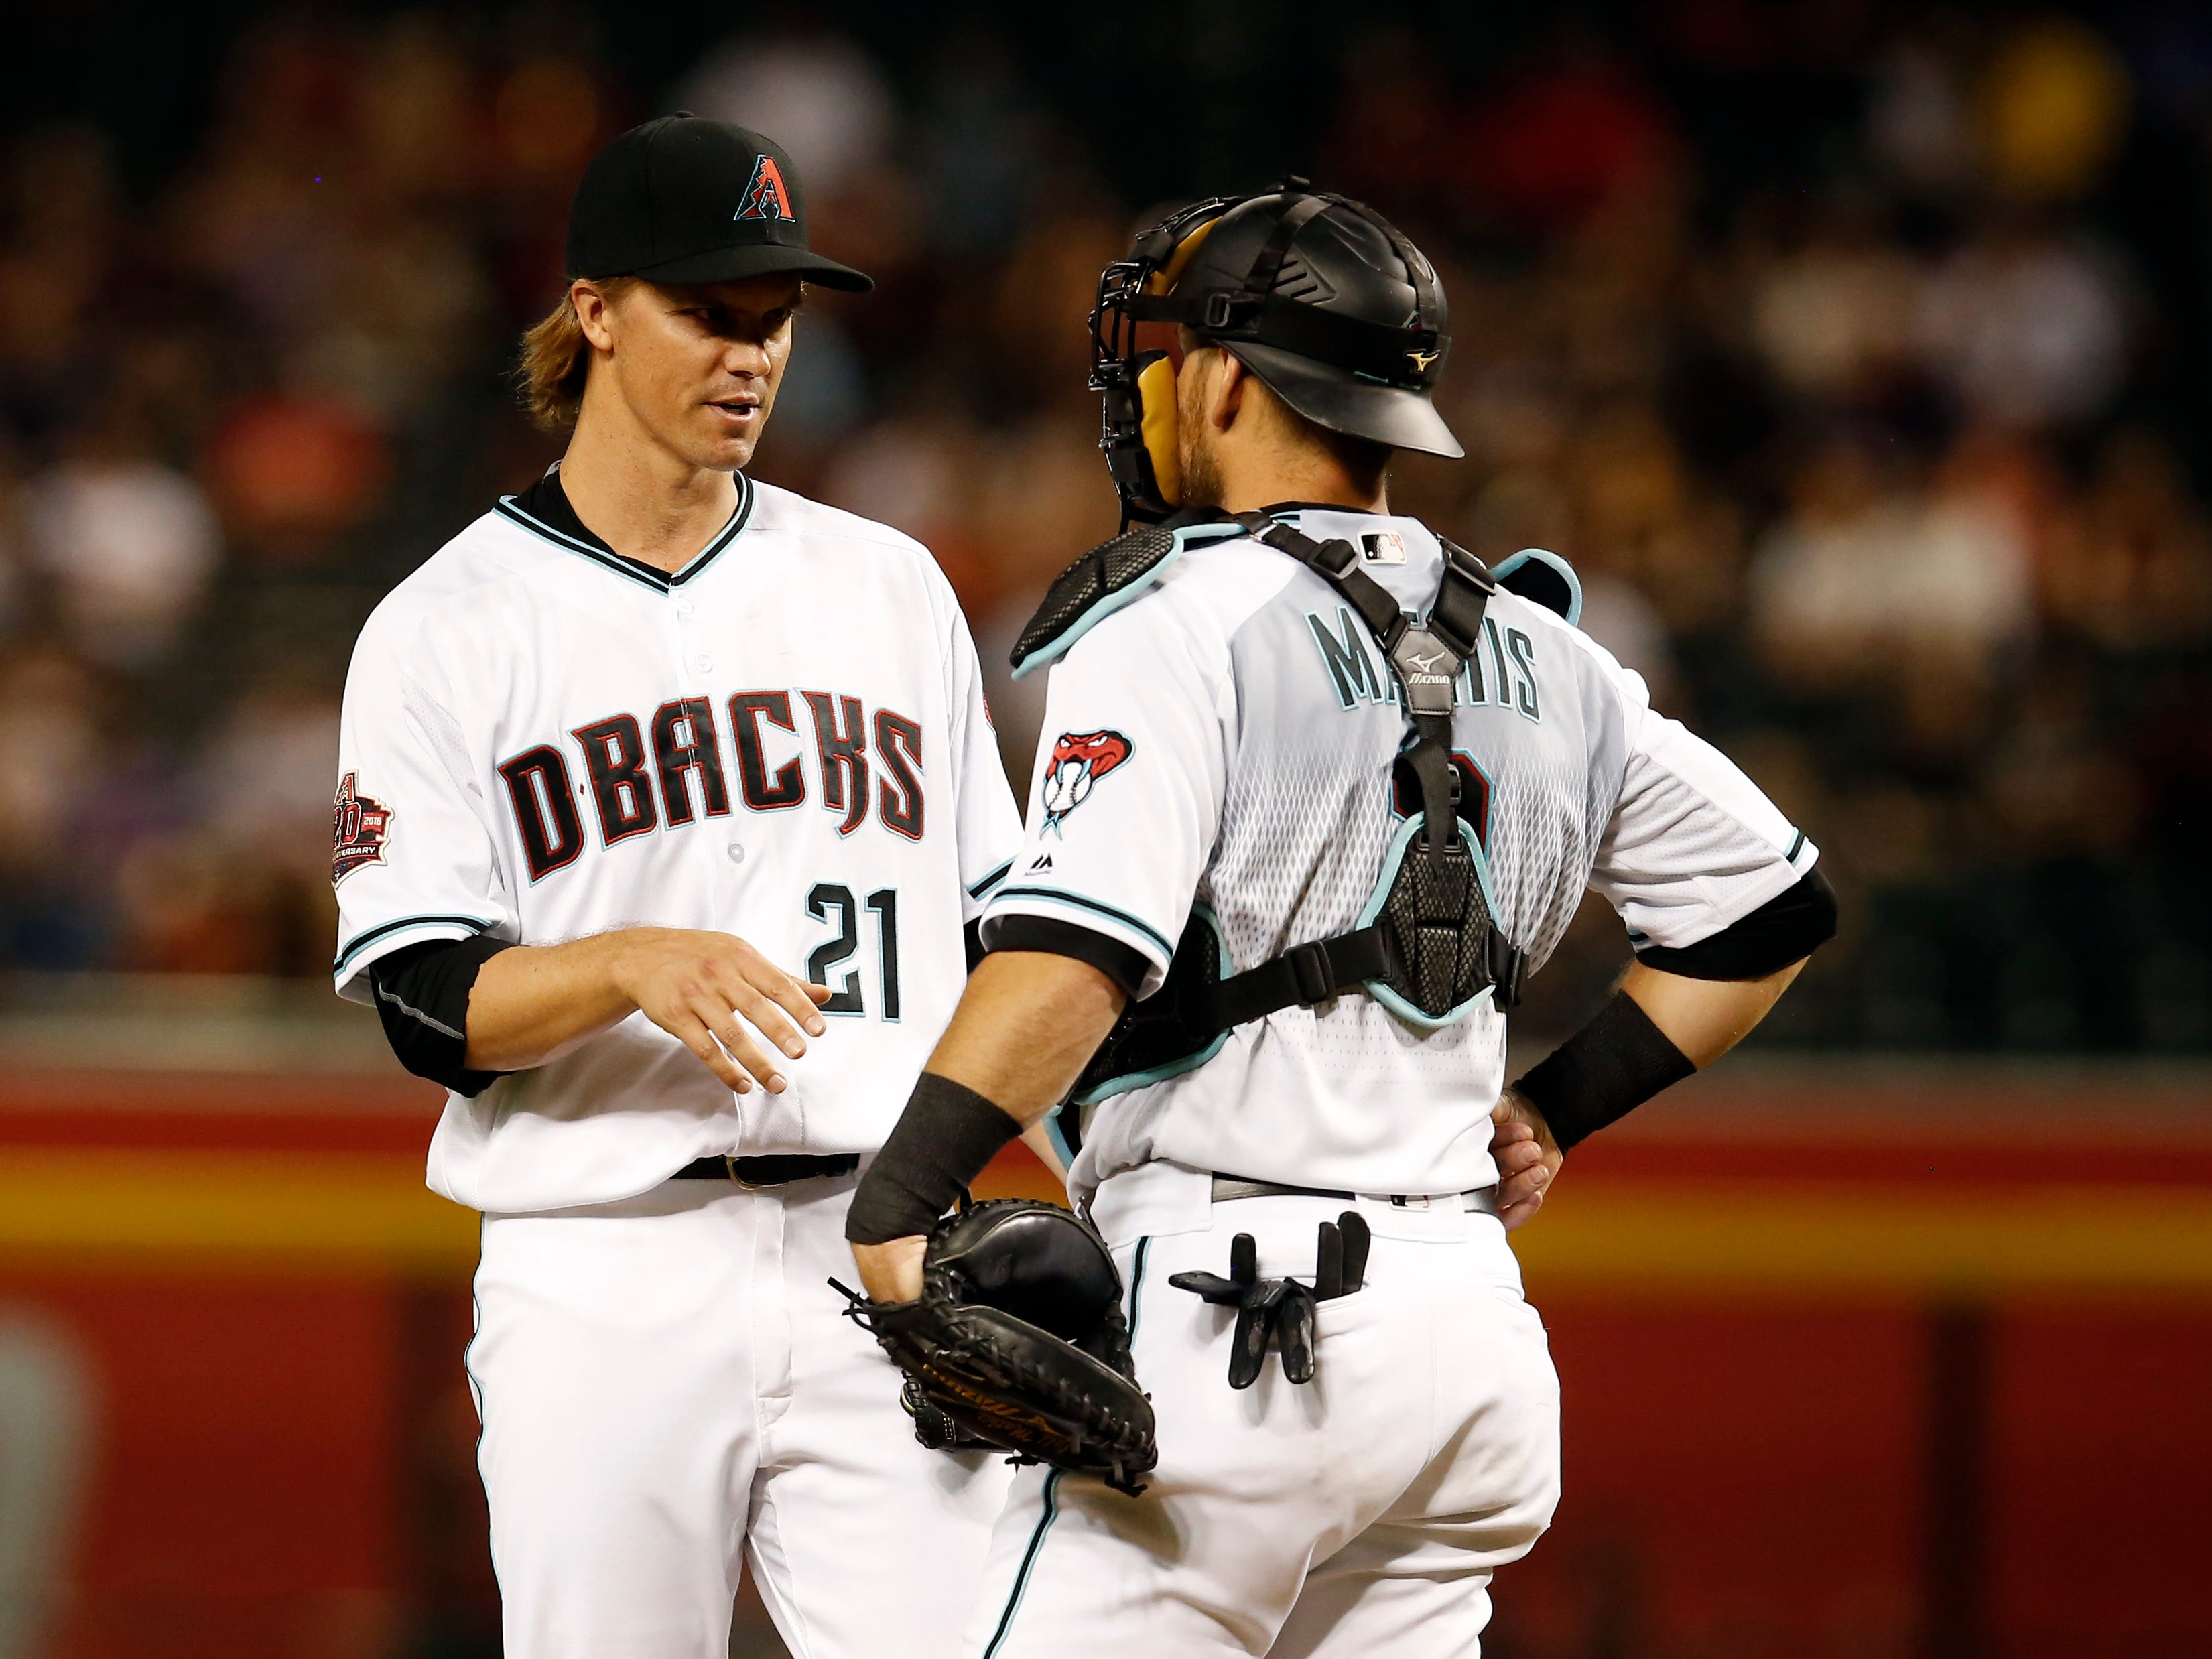 Arizona Diamondbacks starting pitcher Zack Greinke (21) in the first inning during a baseball game against the Philadelphia Phillies, Tuesday, Aug. 7, 2018, in Phoenix.